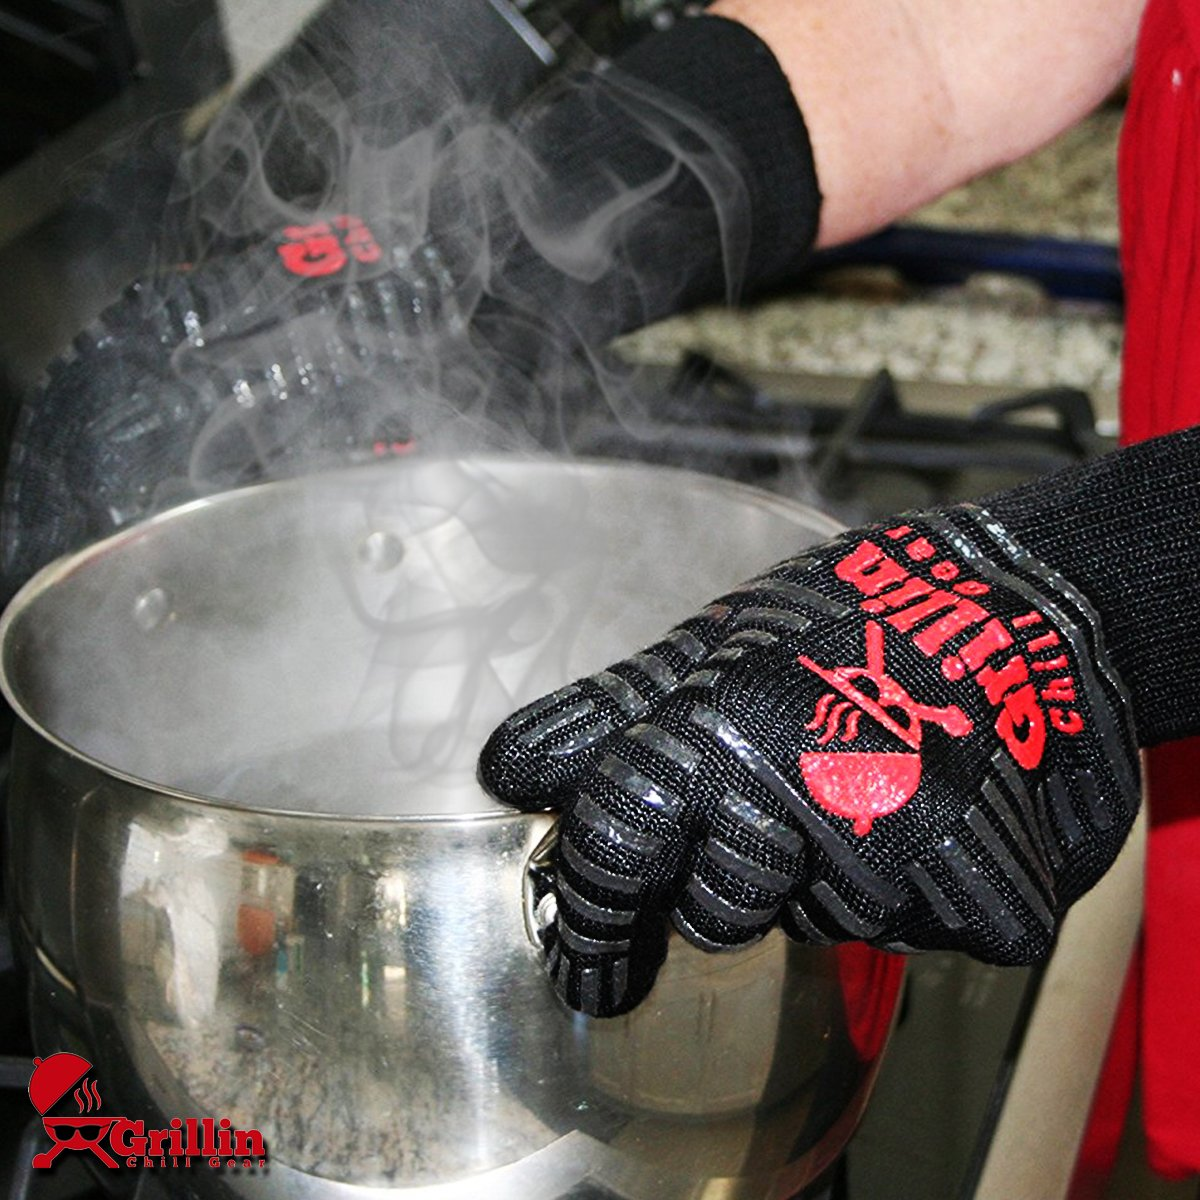 Grillin Chill Gear Meat Claws - Best Bear Claw Pulled Pork Meat Shredders in BBQ Grill Accessories +Extreme Heat Resistant Grill Gloves, Heavy Duty Aramid Fiber & Non Slip Silicone, Soft Cotton Liner by Grillin Chill Gear (Image #4)